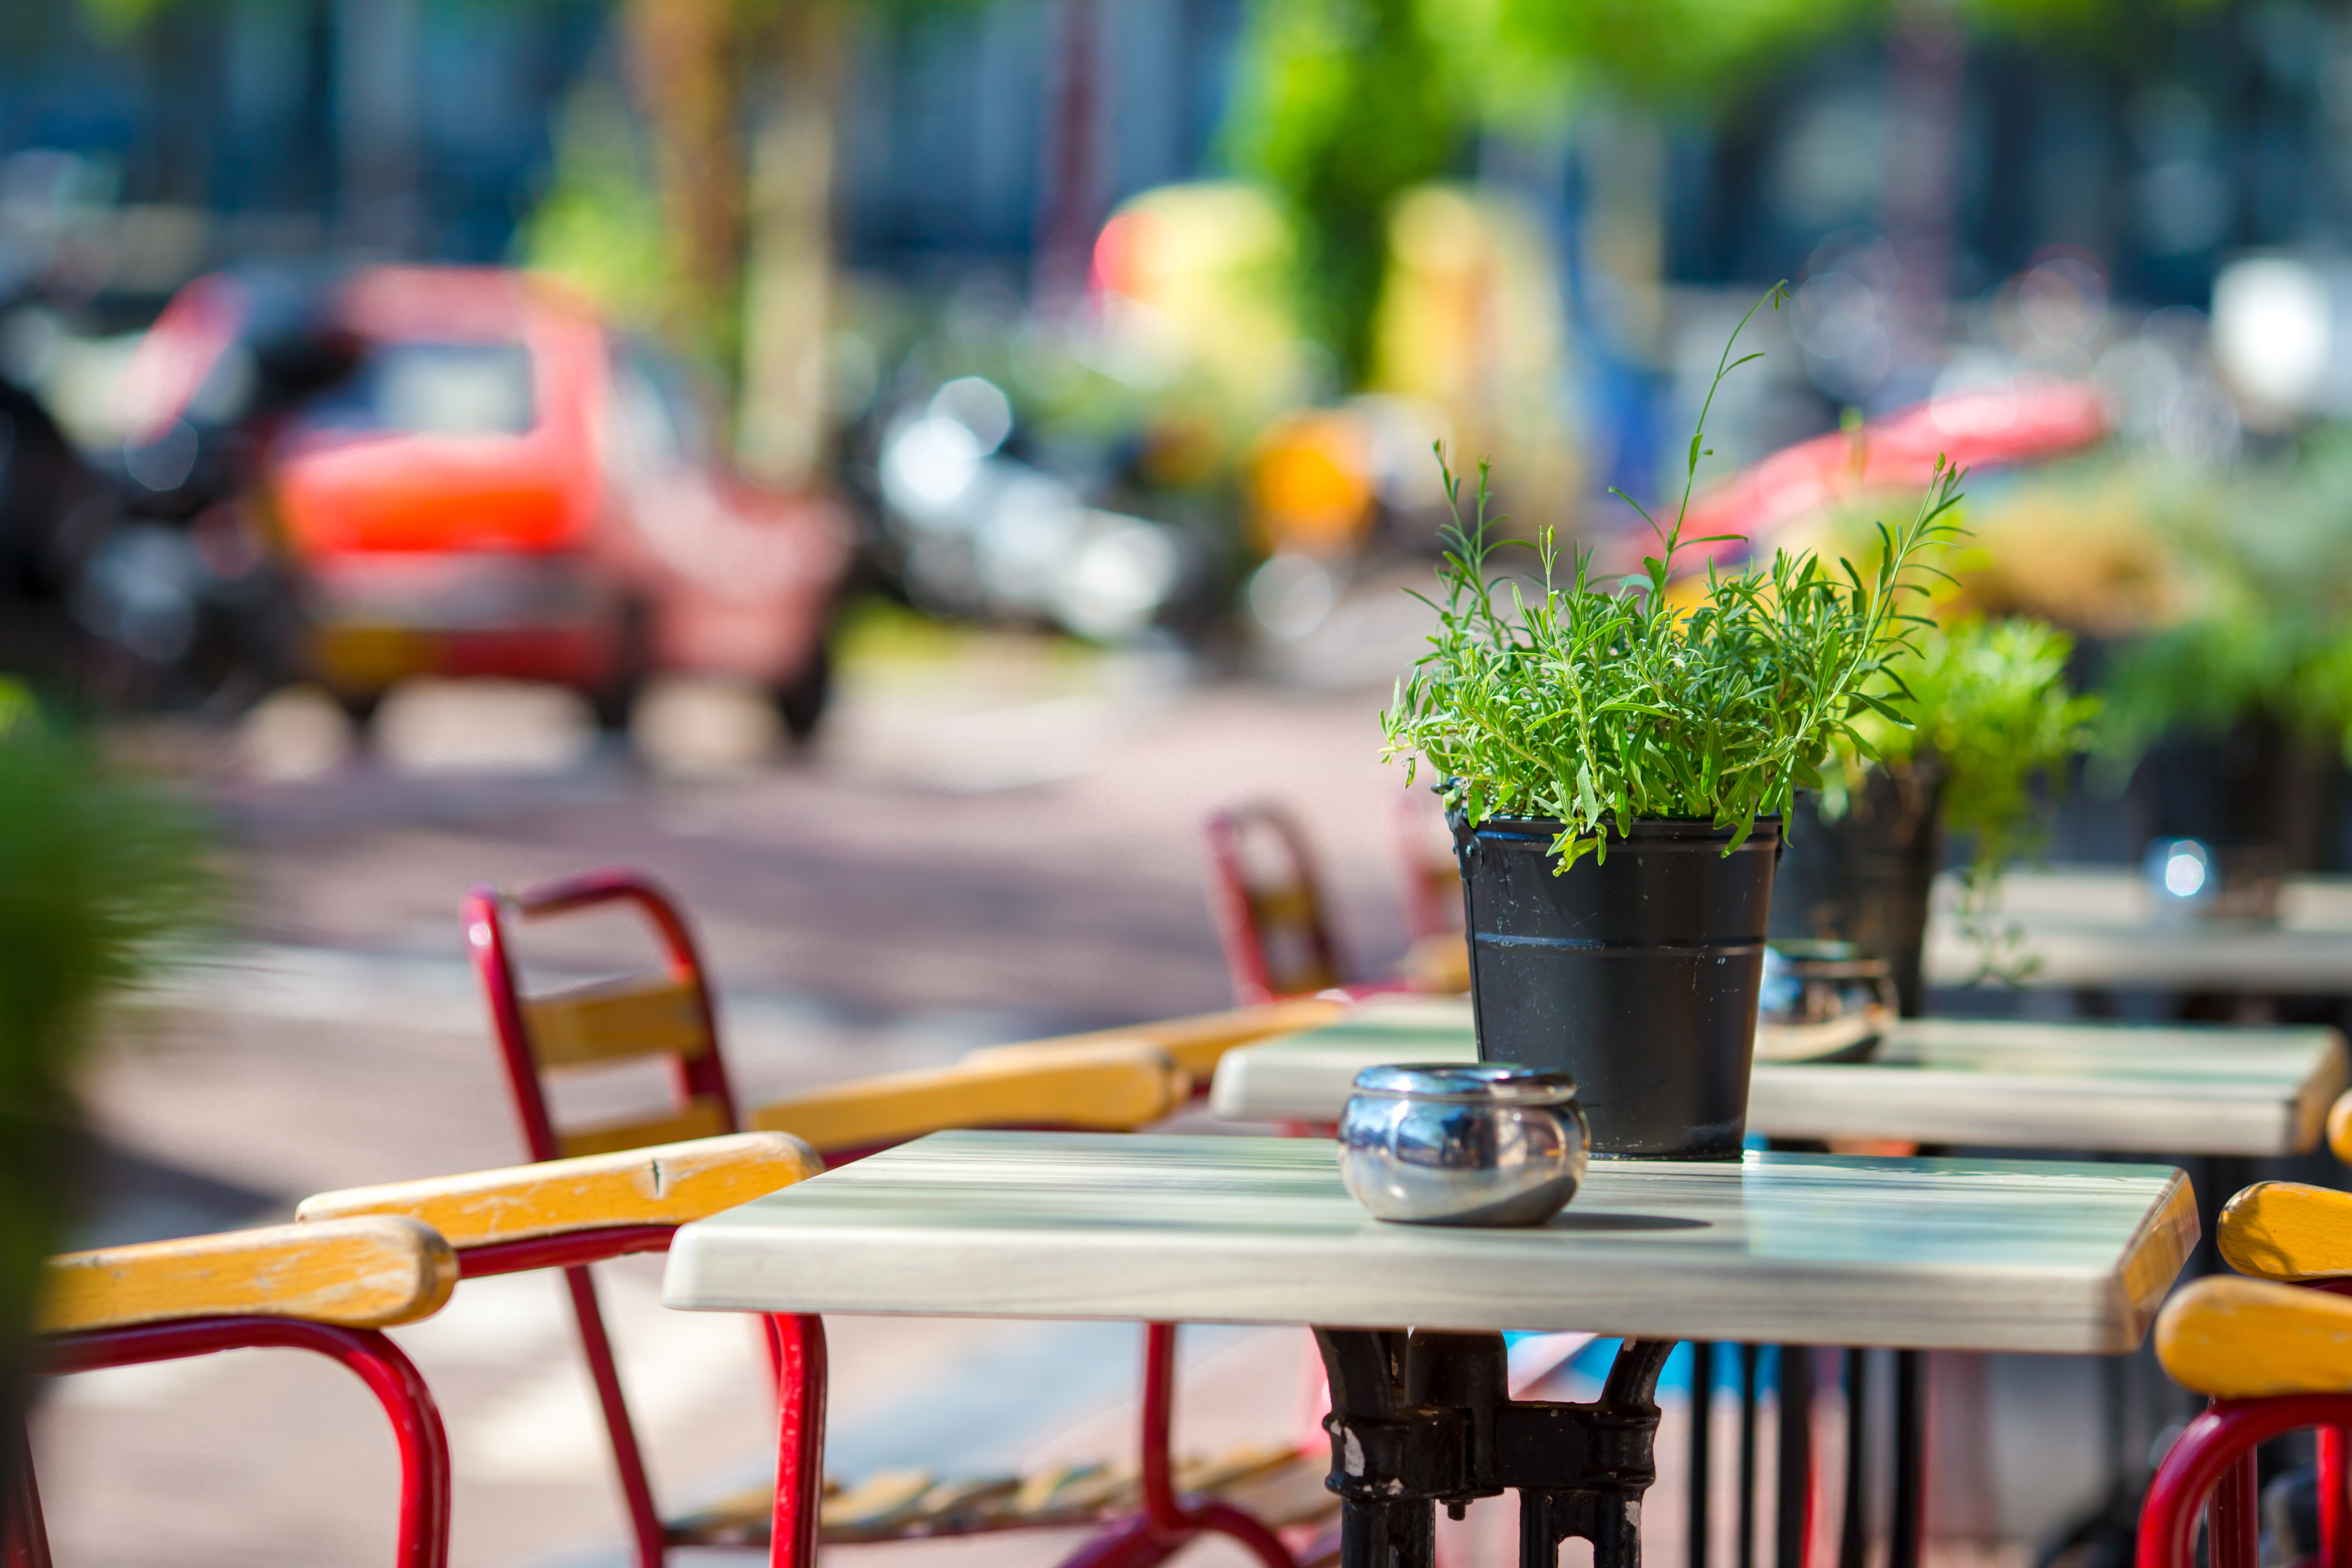 Empty outdoor tables with plants on top and red chairs